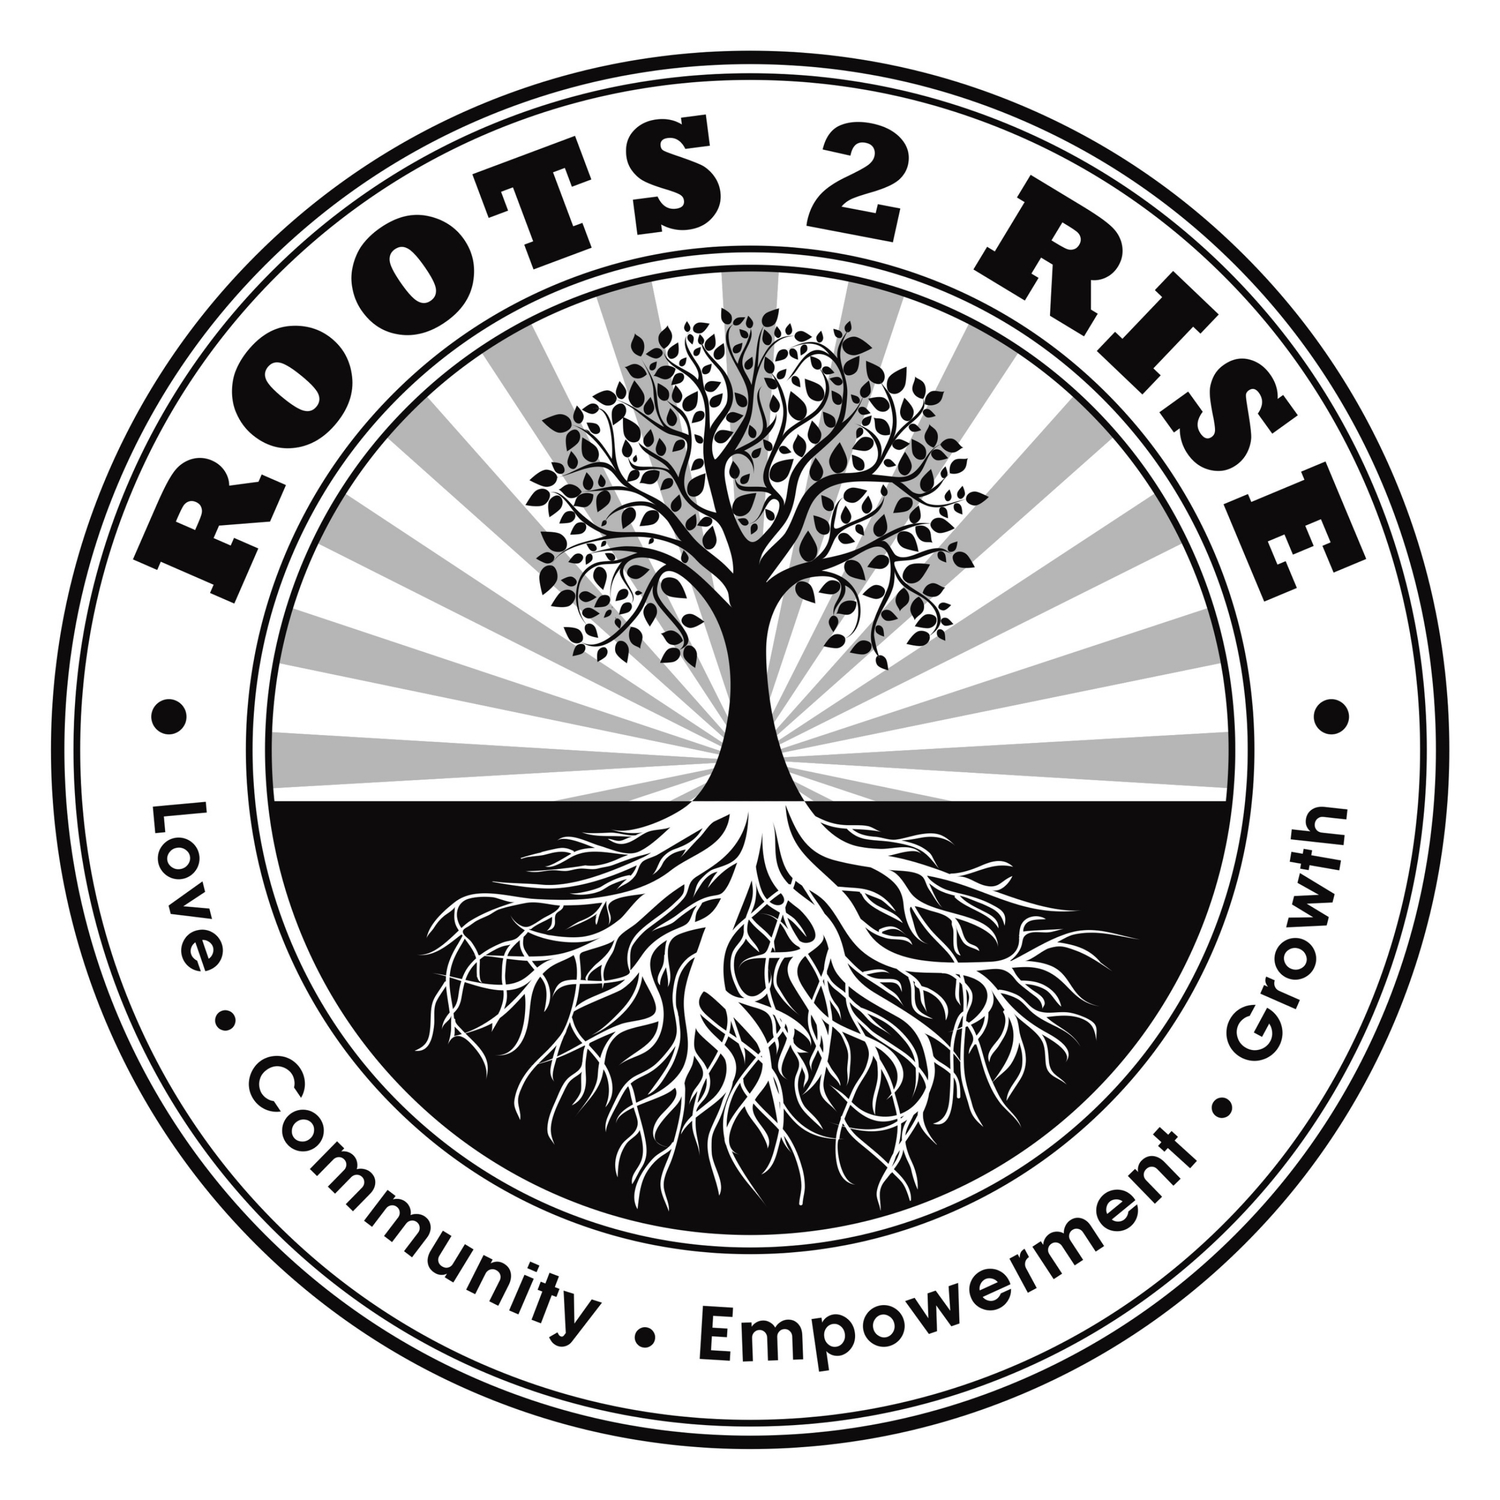 Roots2Rise